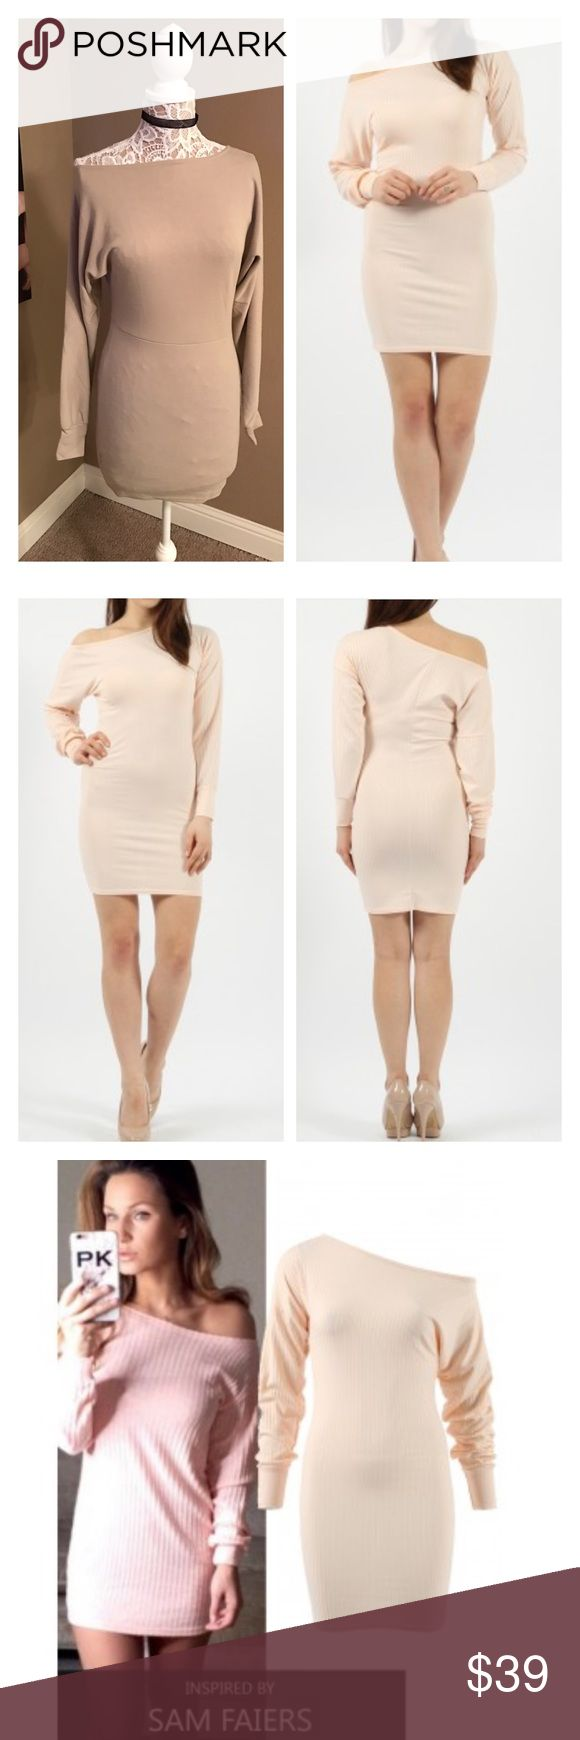 Off shoulder celebrity inspired body con dress This body con dress can be worn off shoulder on one shoulder. Nude color. Lightweight soft sweater like material. Polyester and elastane. U.K. Boutique Brand outsources to name brands such as ASOS and Missguided. Available in sizes 4 to 10. NWT. ASOS Dresses